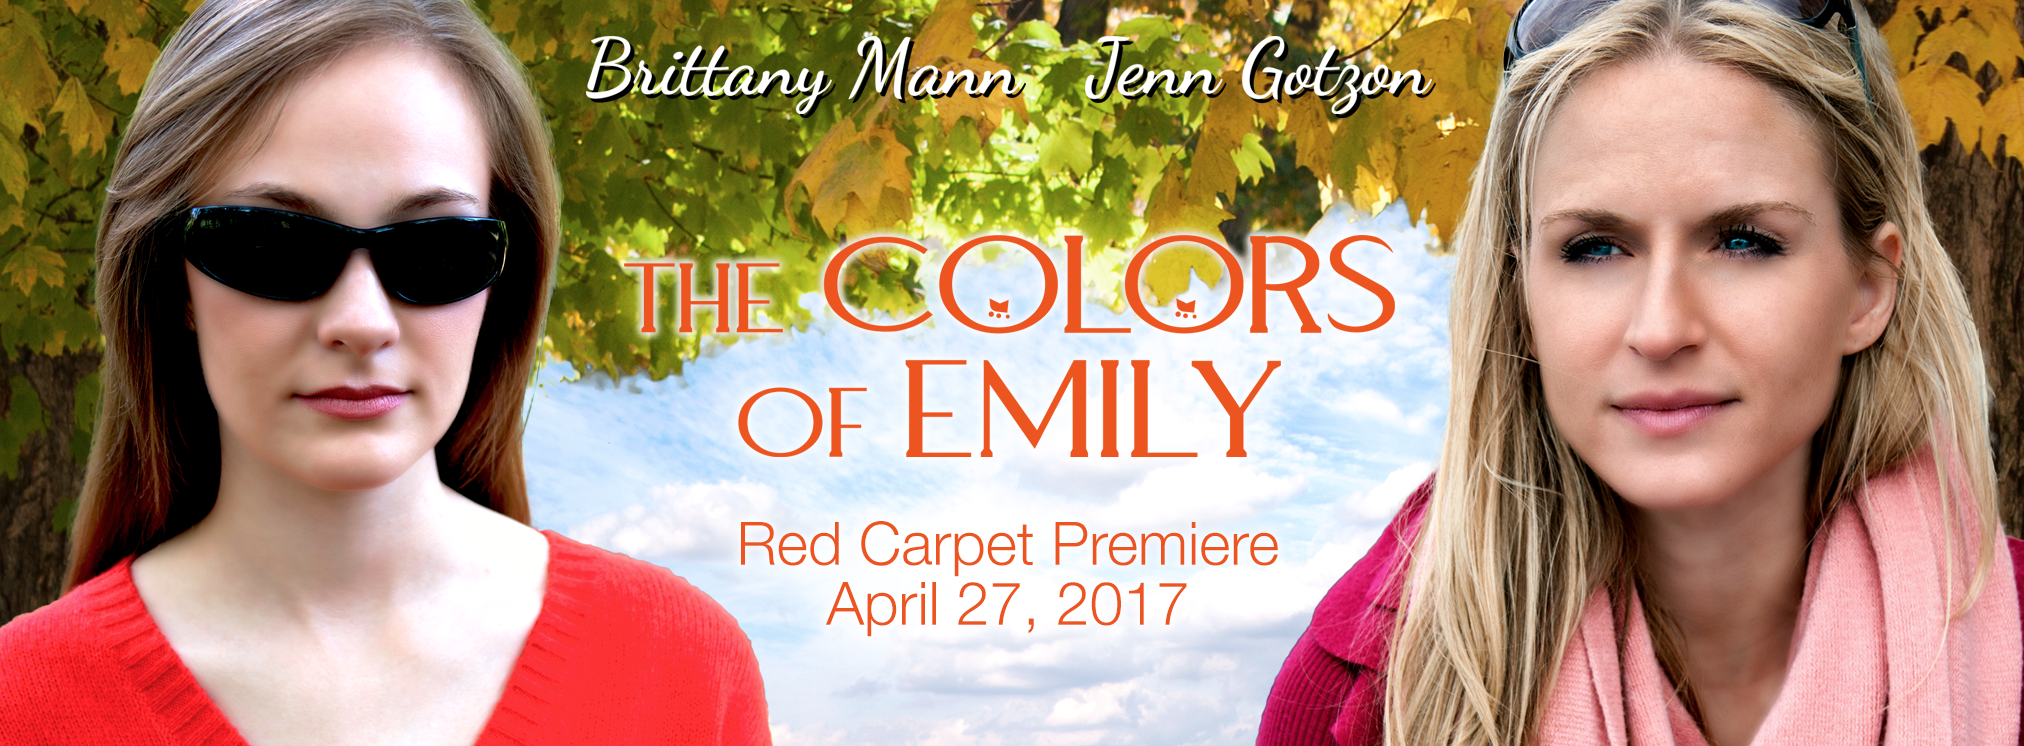 THE COLORS OF EMILY - SHOWPLACE EAST RED CARPET THIS THURSDAY APRIL 27 6:00PM